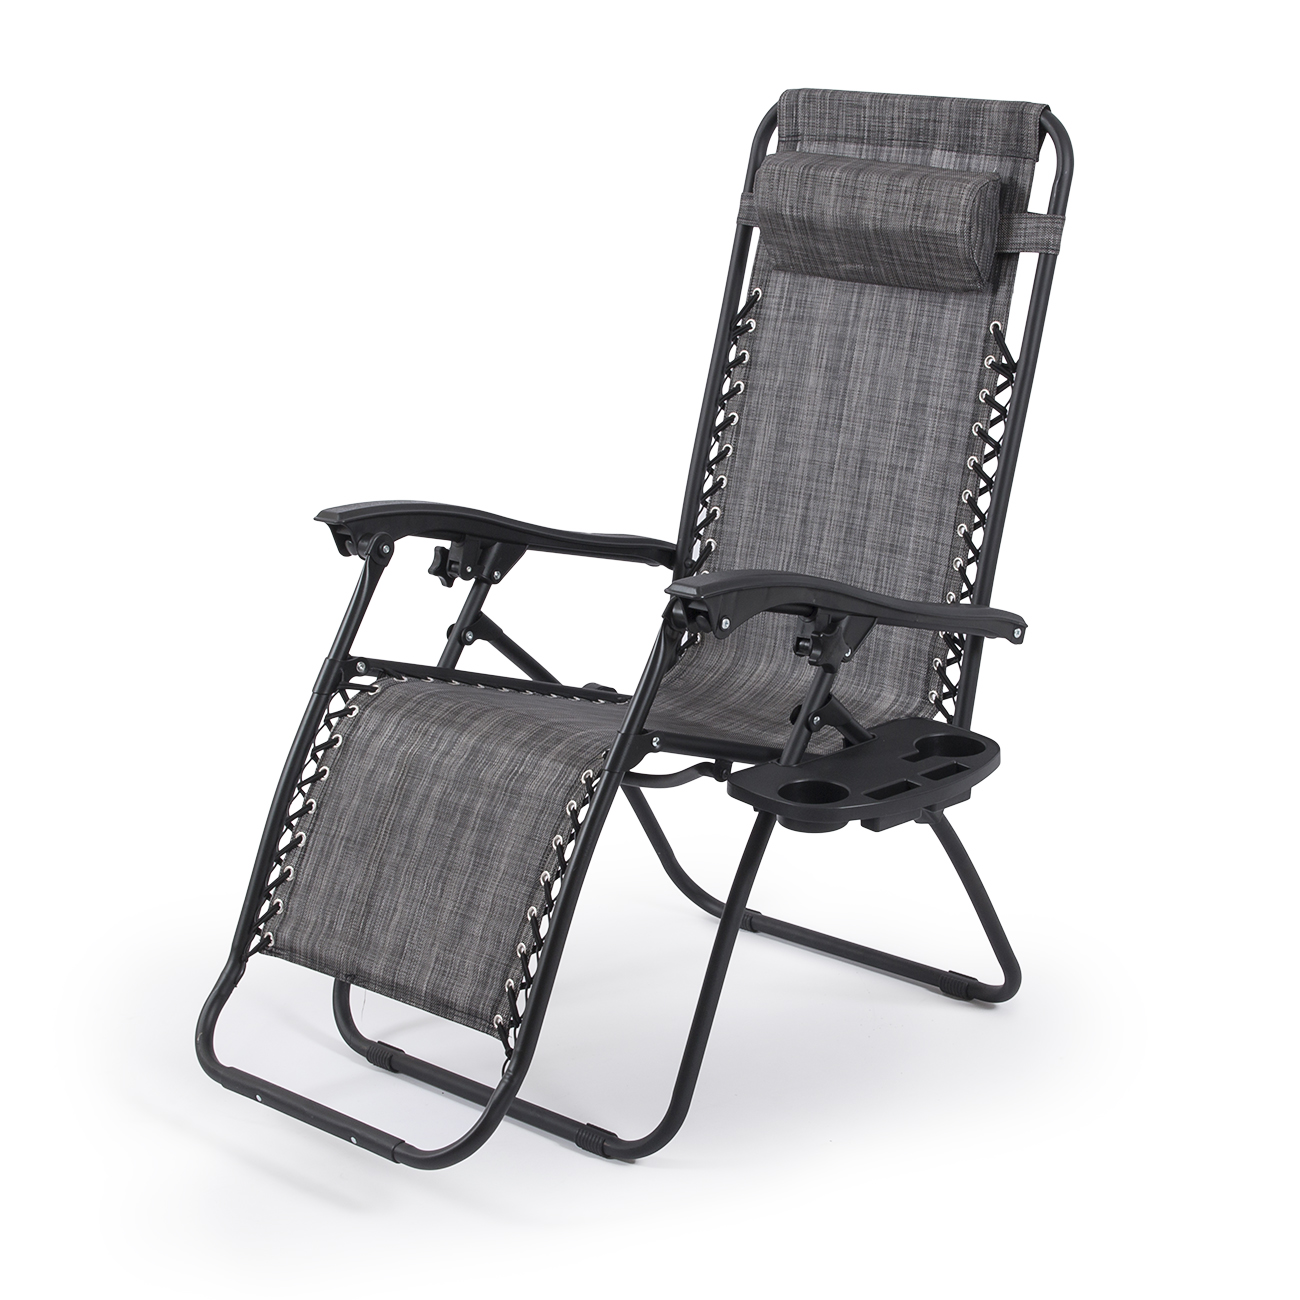 Lightweight Folding Beach Lounge Chair 2 Outdoor Zero Gravity Lounge Chair Beach Patio Pool Yard